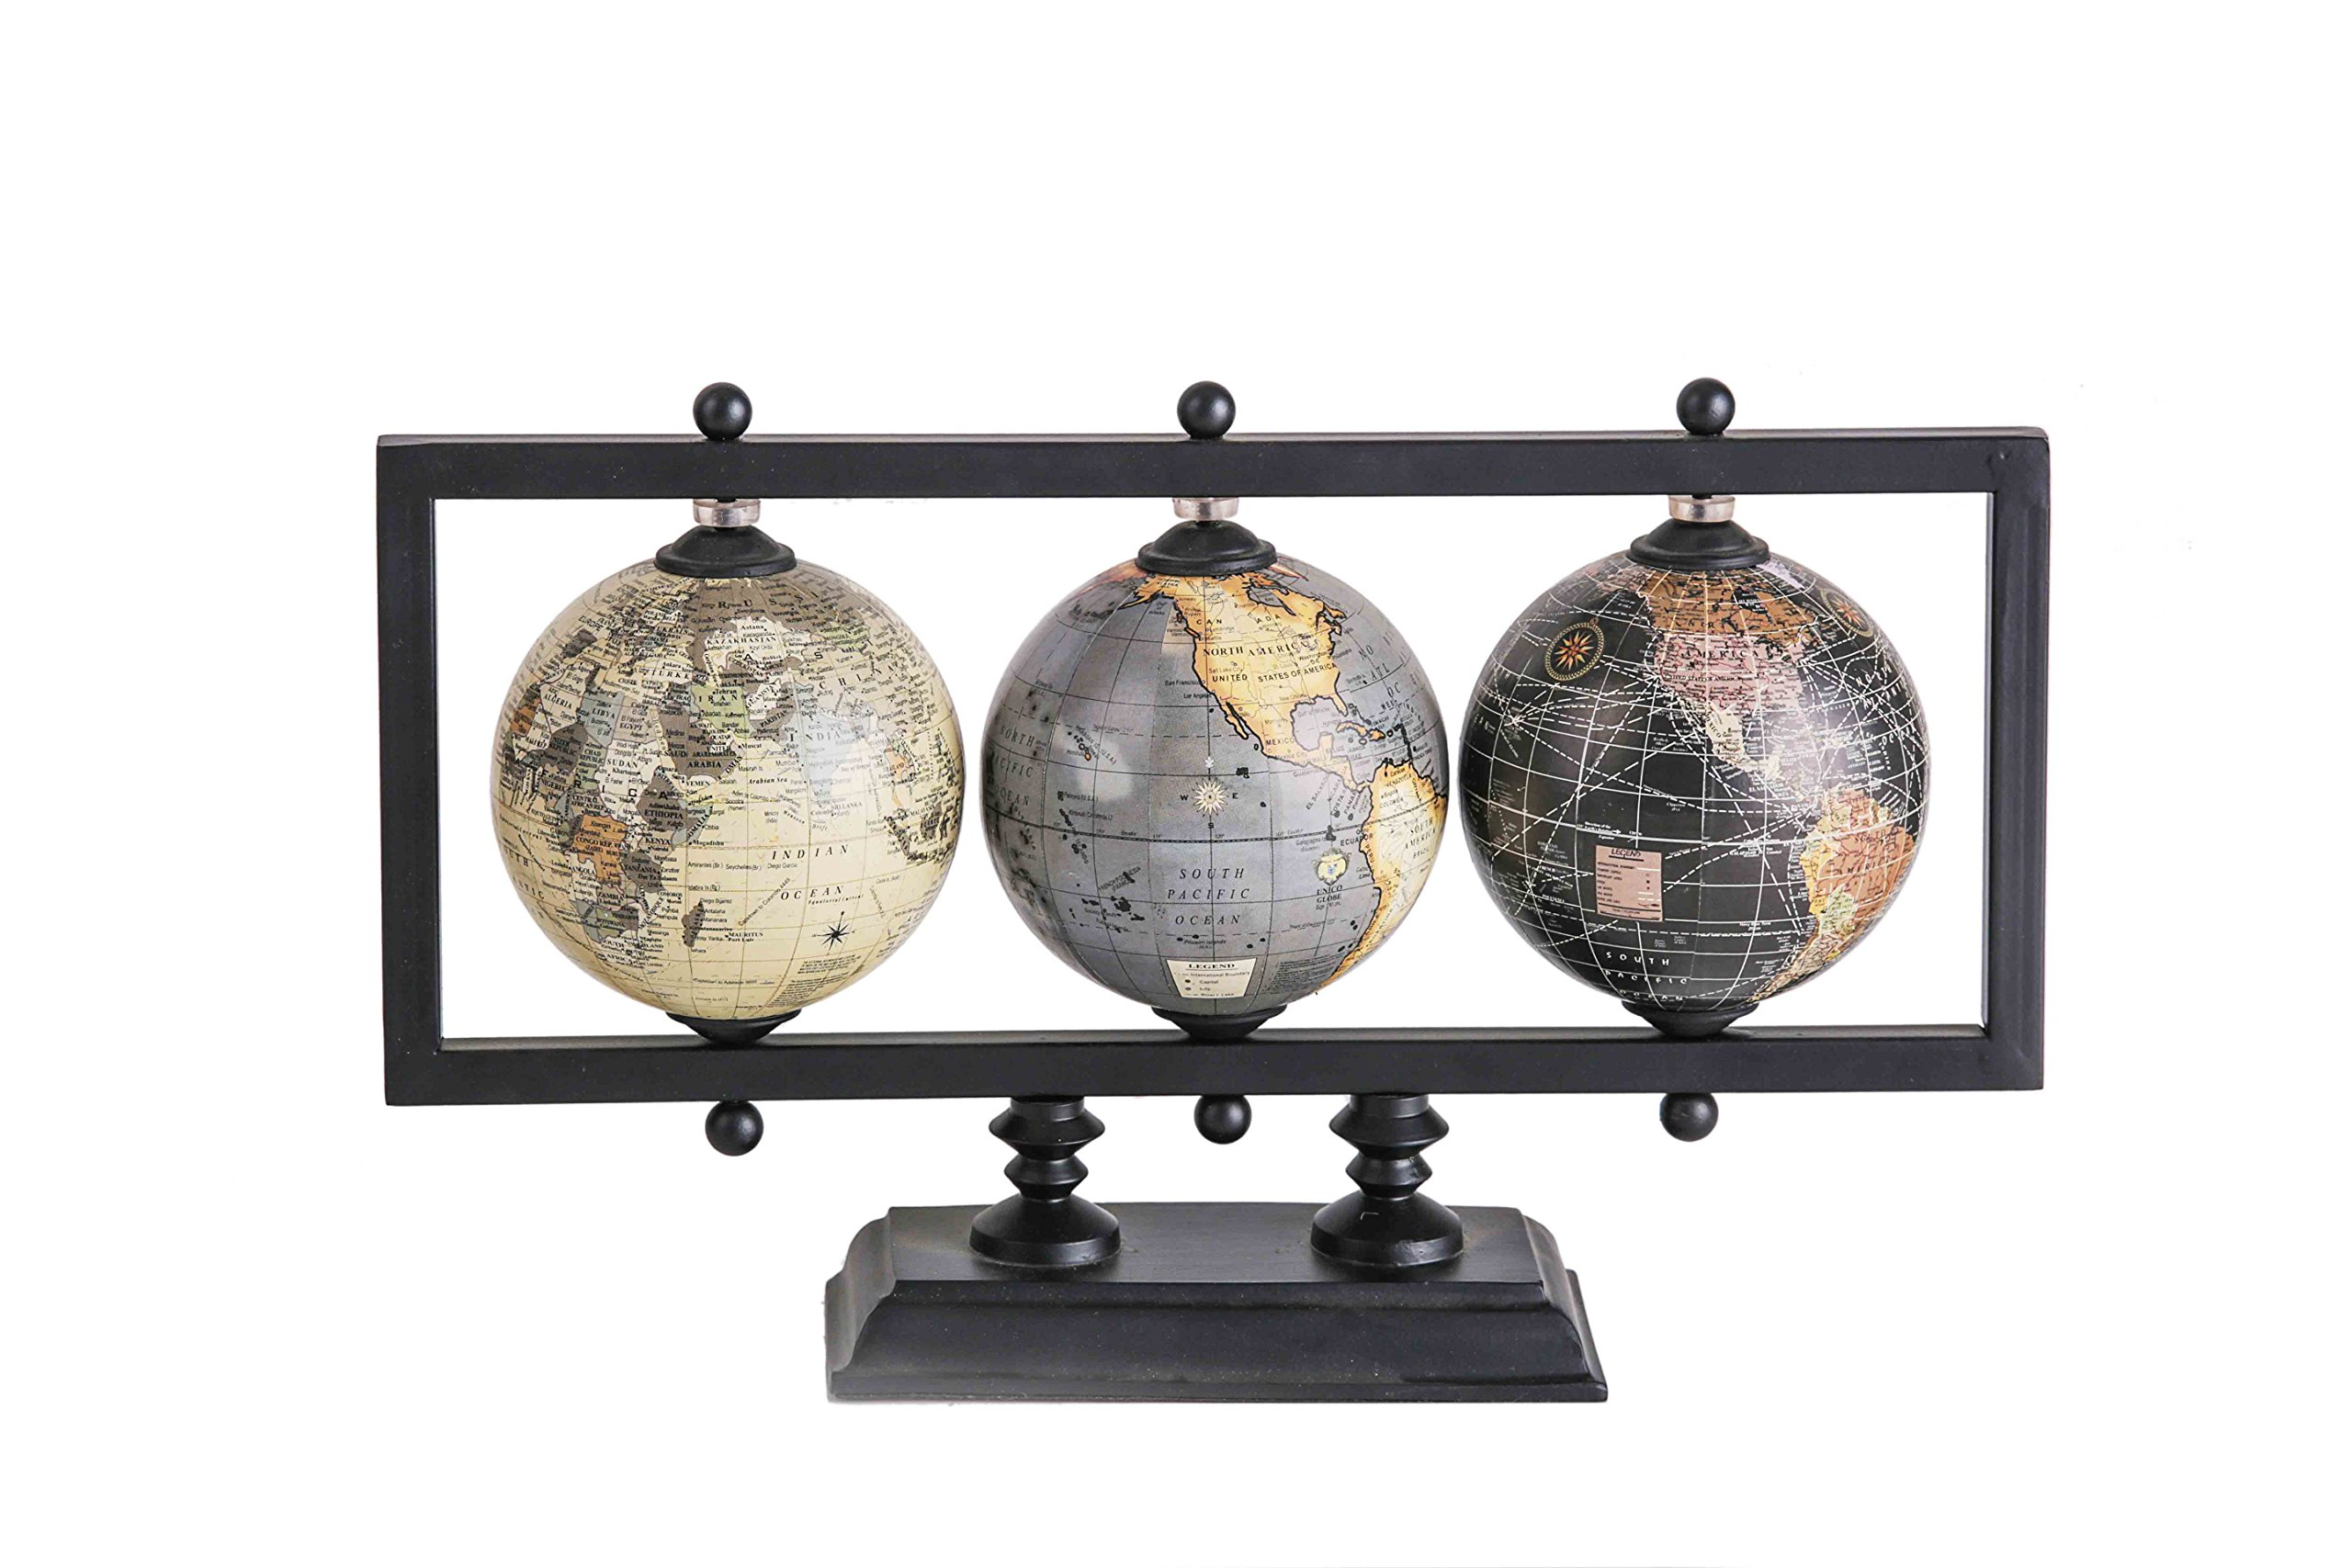 SAMMSARA Home Décor World Traveler Multi Globe Stand.4 Inches Diameter.Office Desk Decorative Items.Office Decor